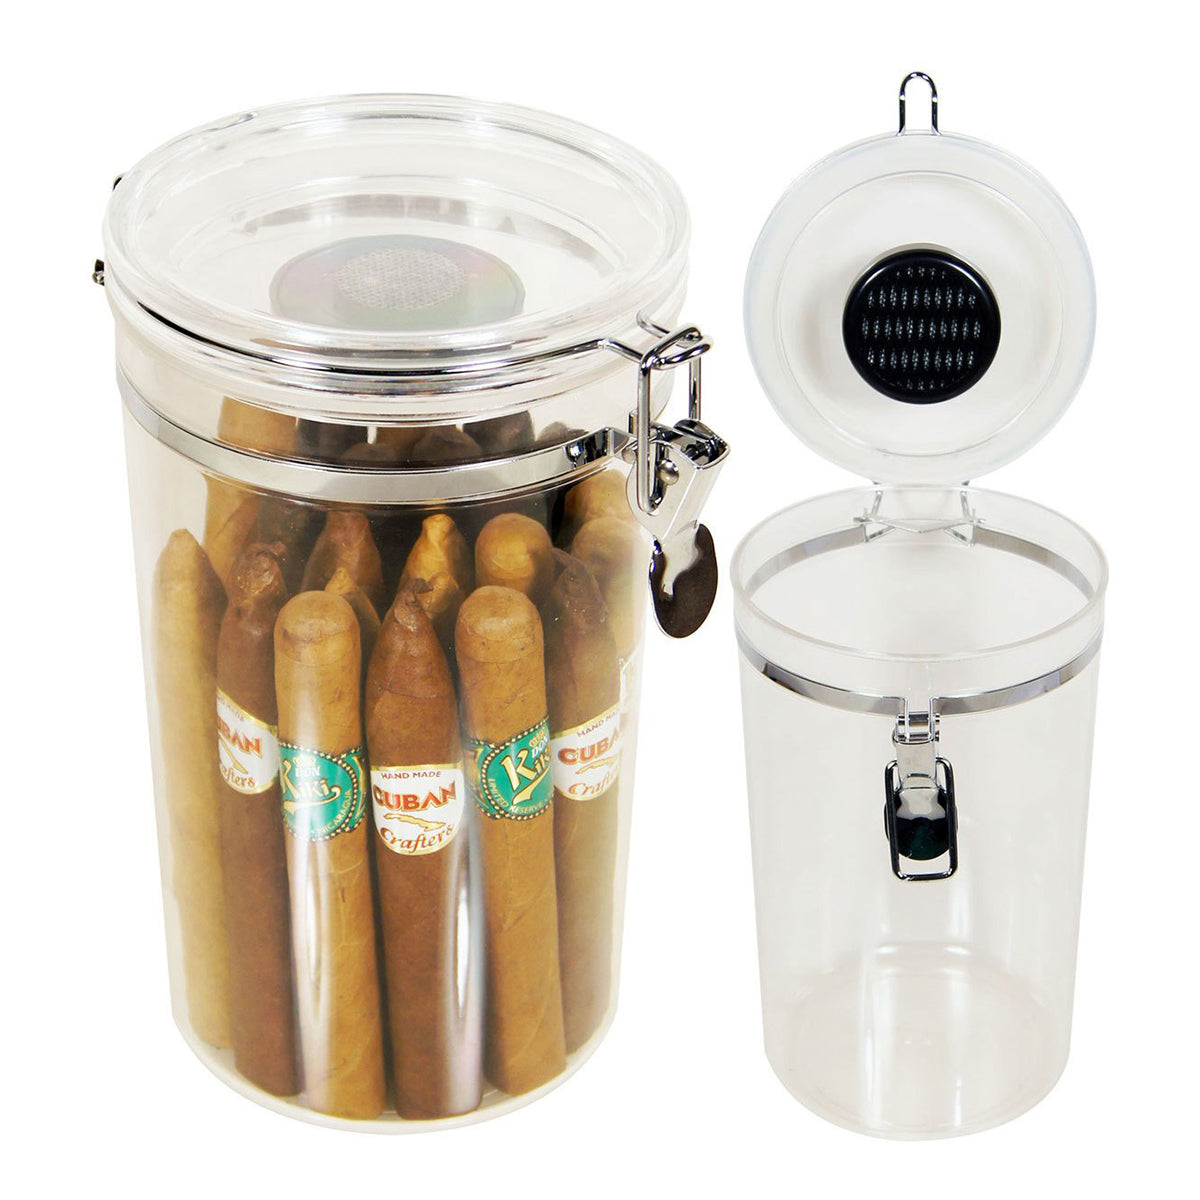 Acrylic Cigar Jar Humidor Humidifier for 25 Cigars